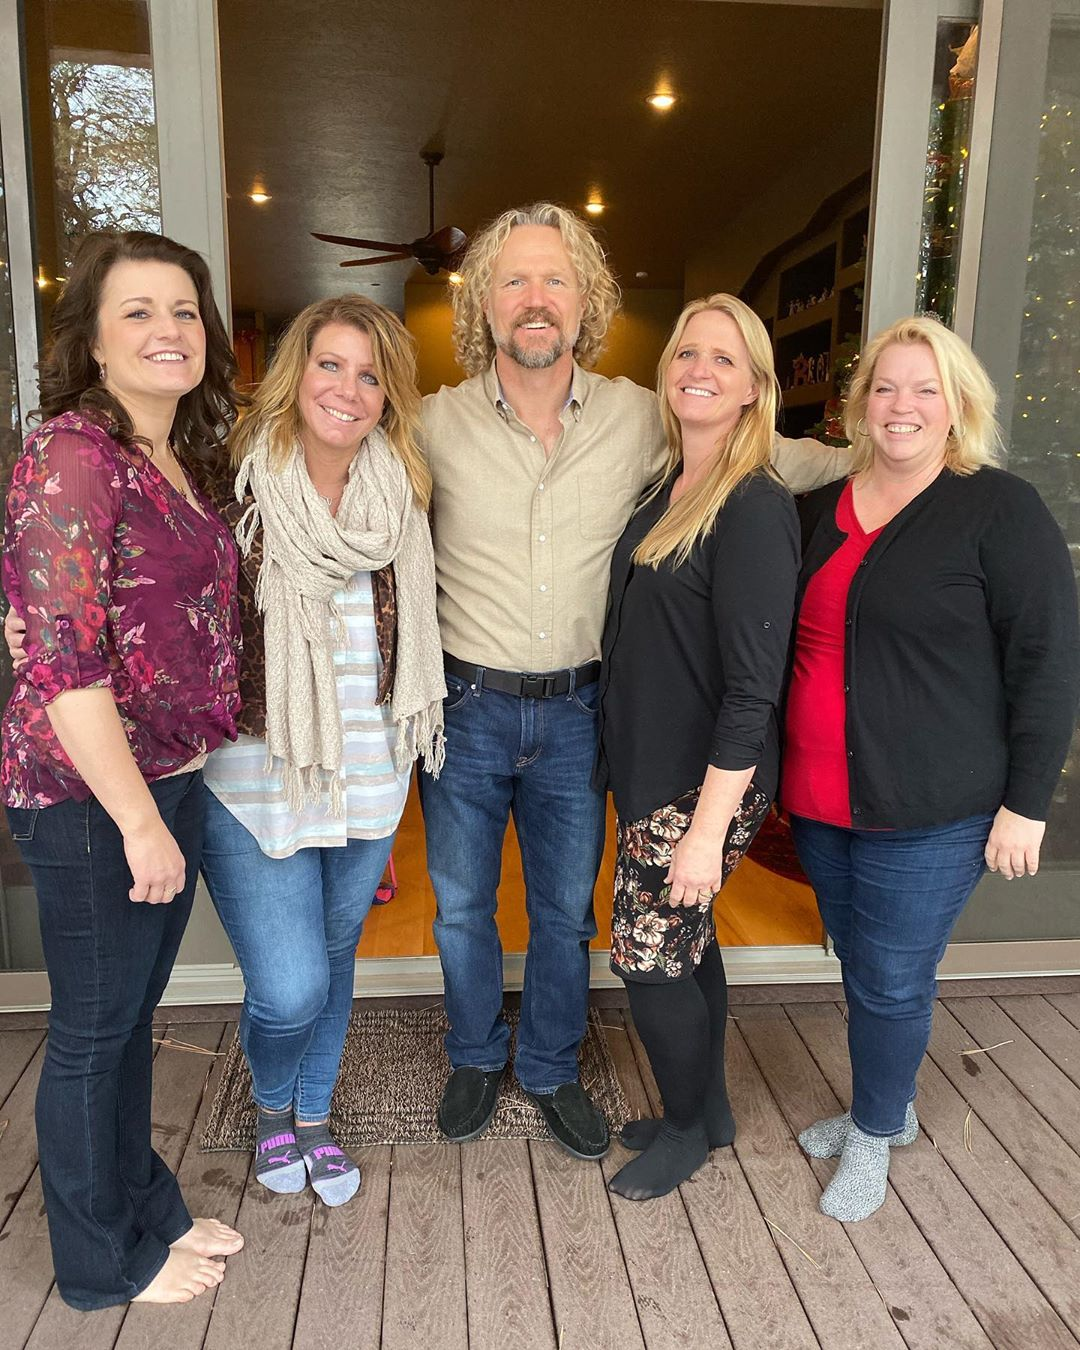 Sister Wives: When Janelle Brown Posts – Fans Notice